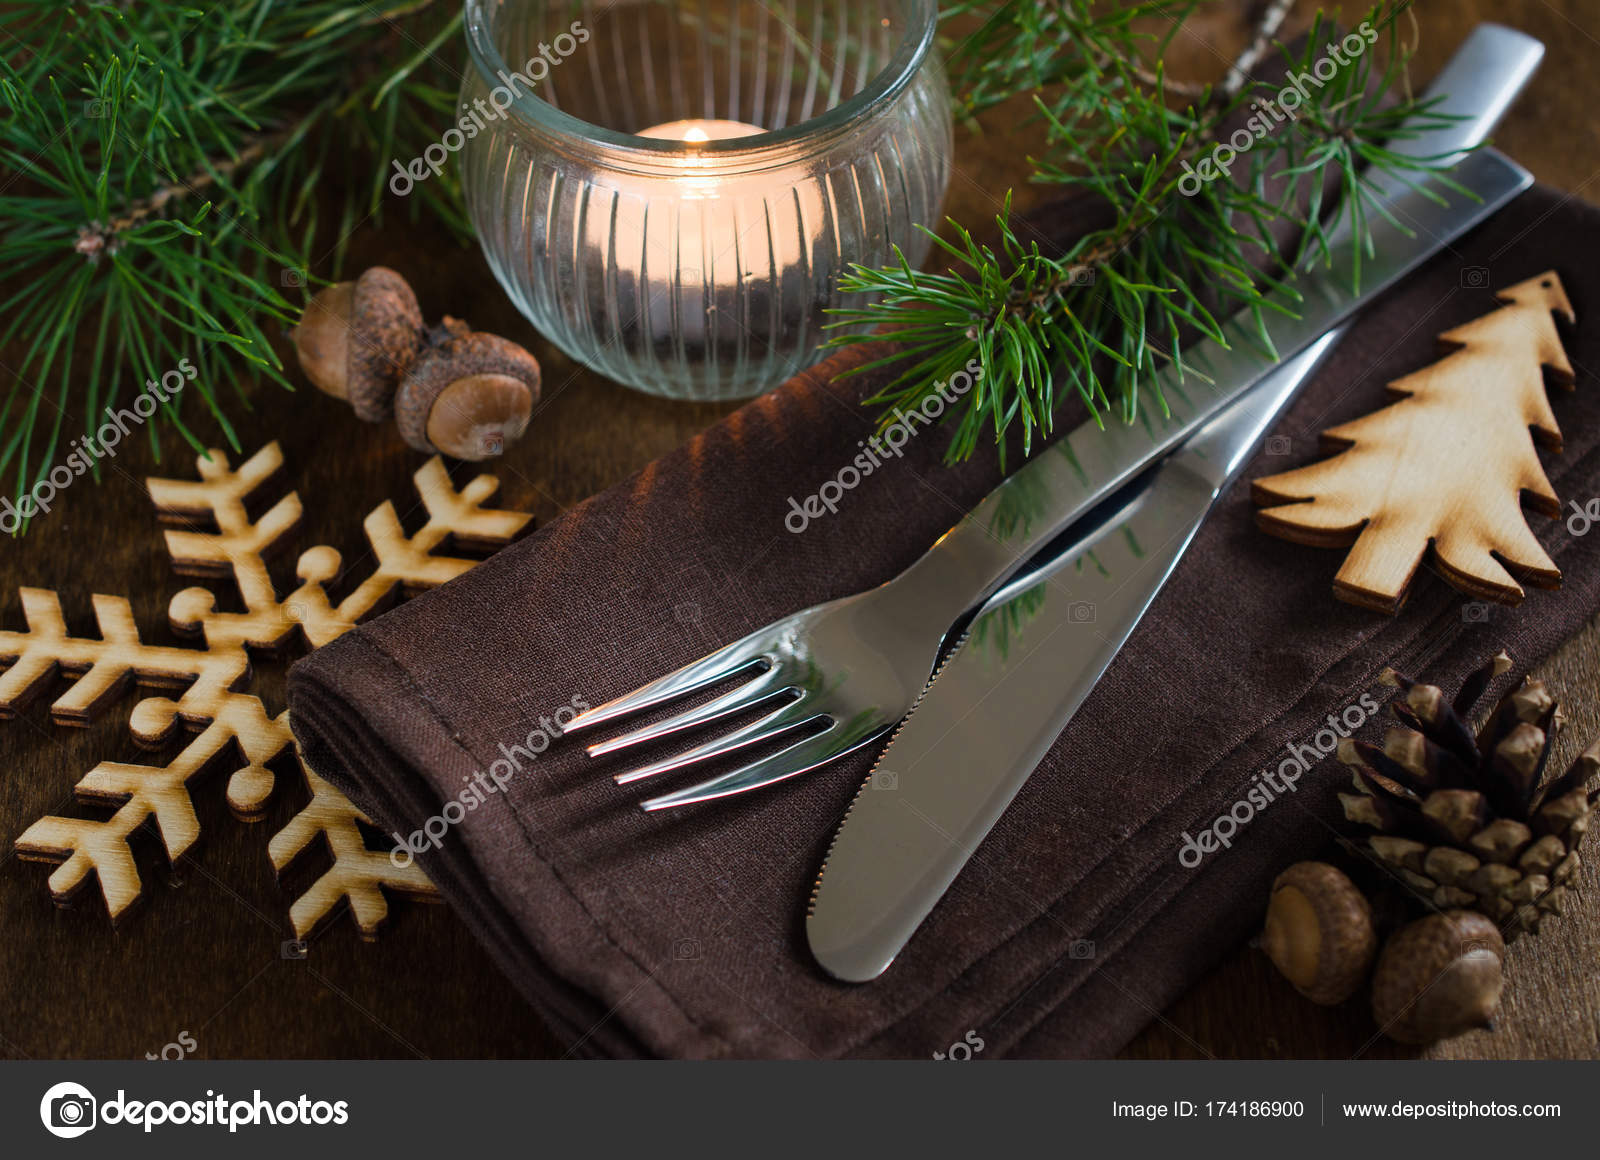 Rustic Christmas table setting with candle